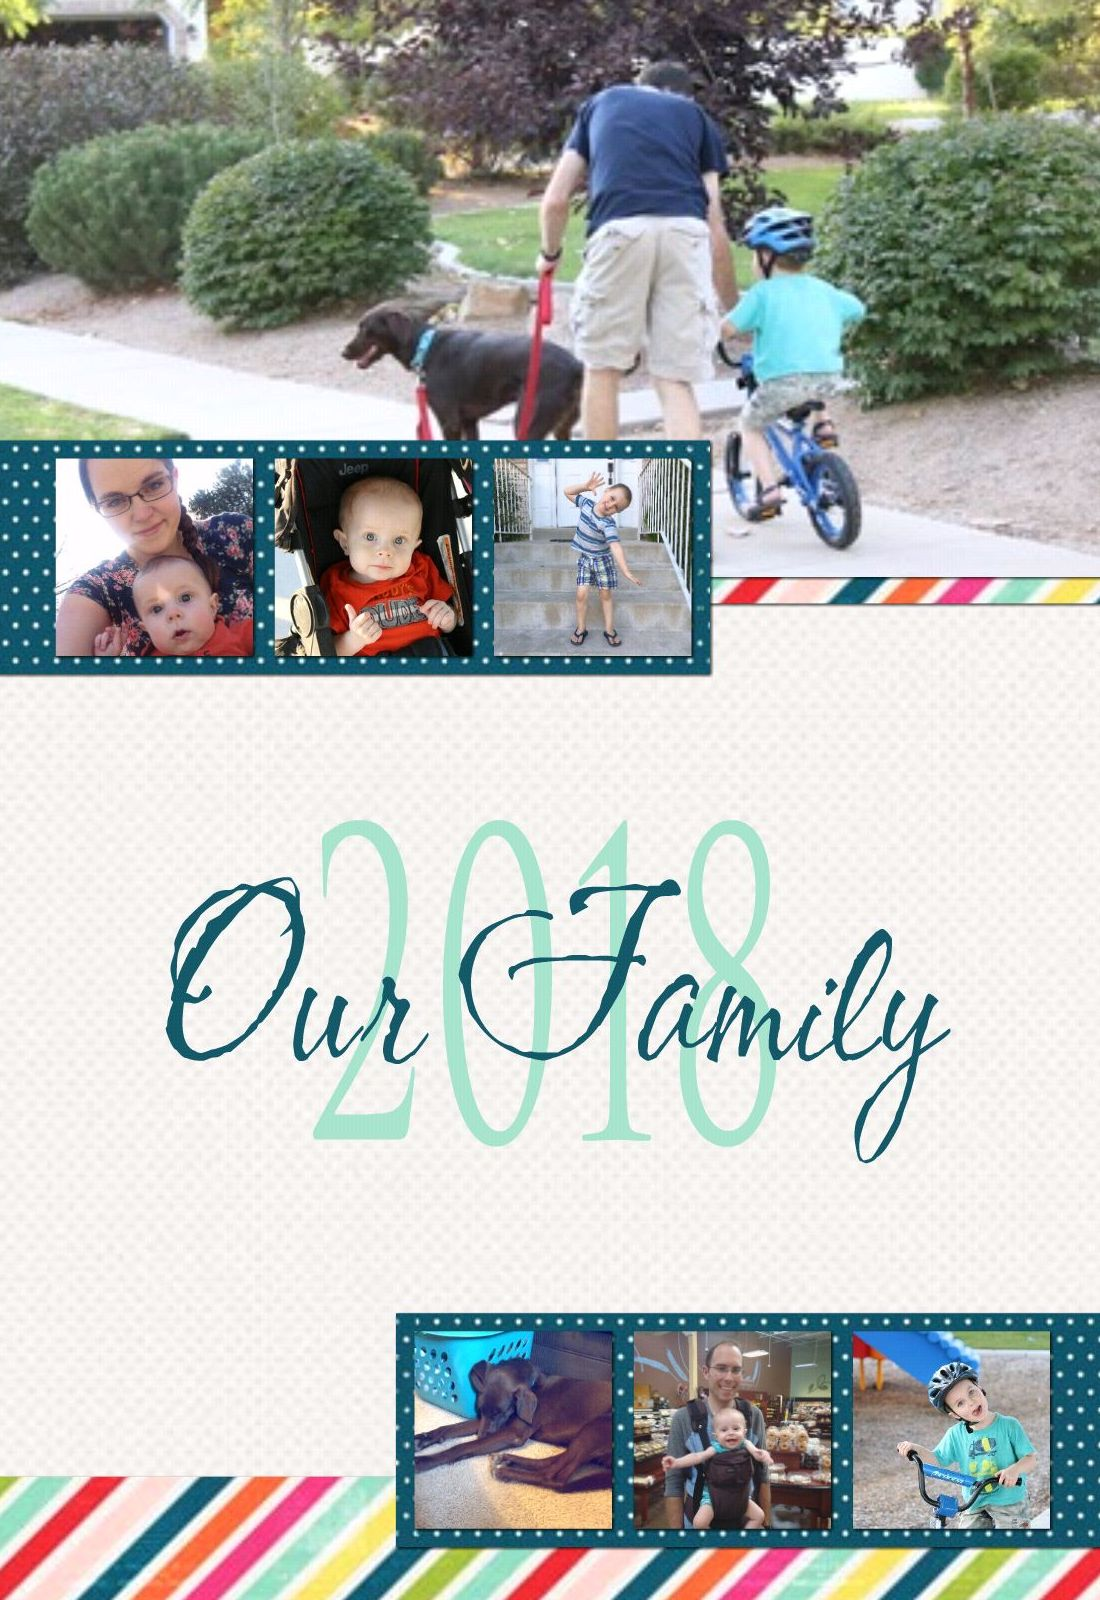 2018 Our Family - 2